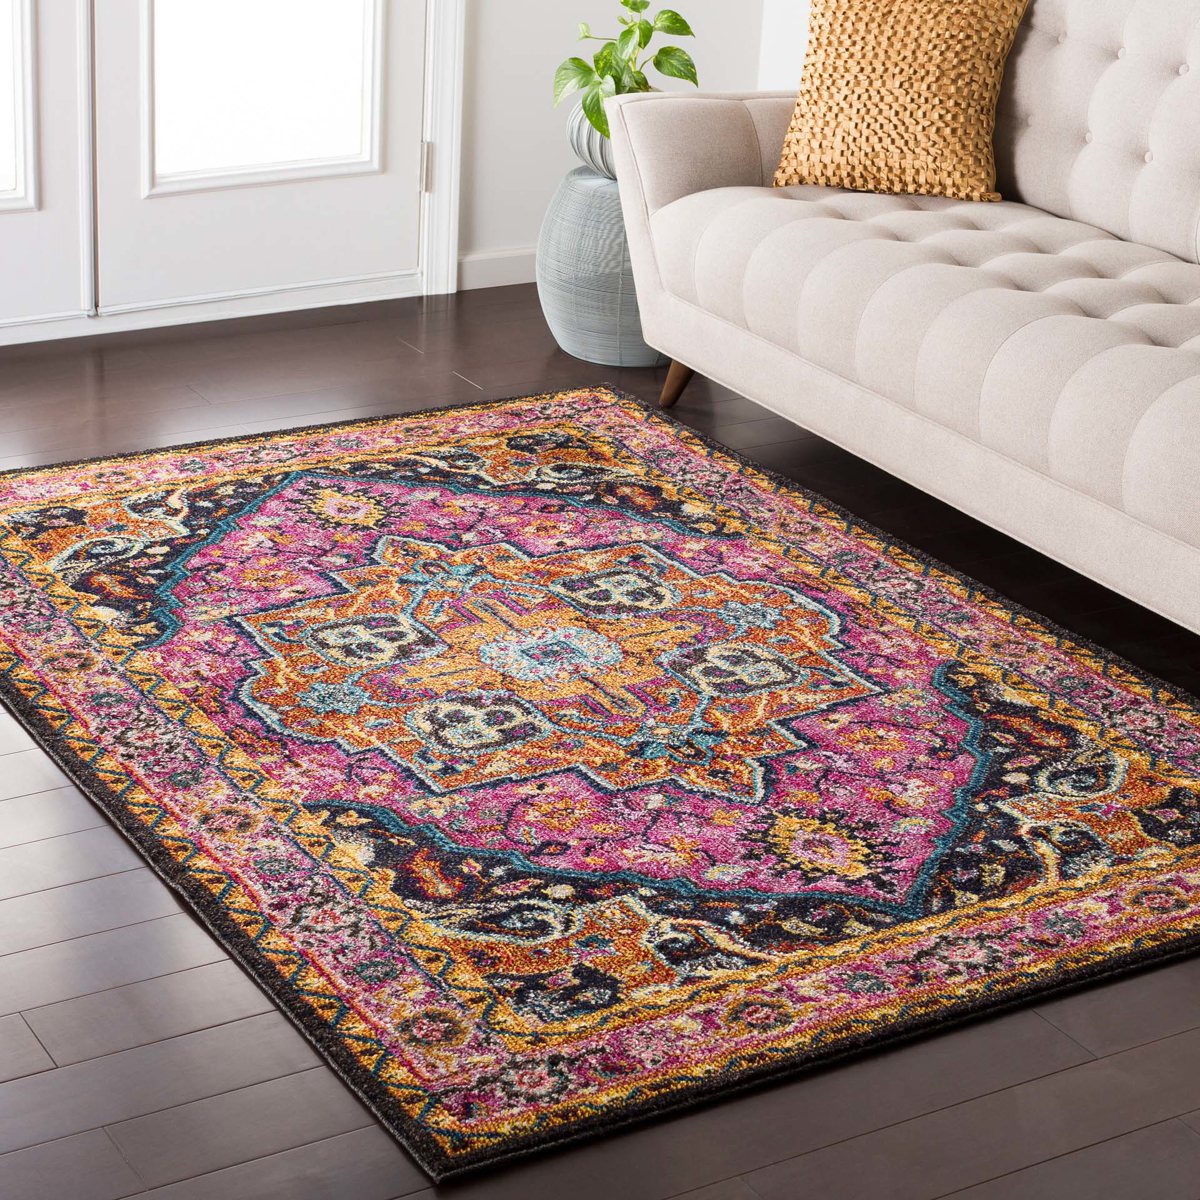 Trendy colorful 5x7 Turkish rug with hints of pink from the Surya Anika Collection on wood floor in living room